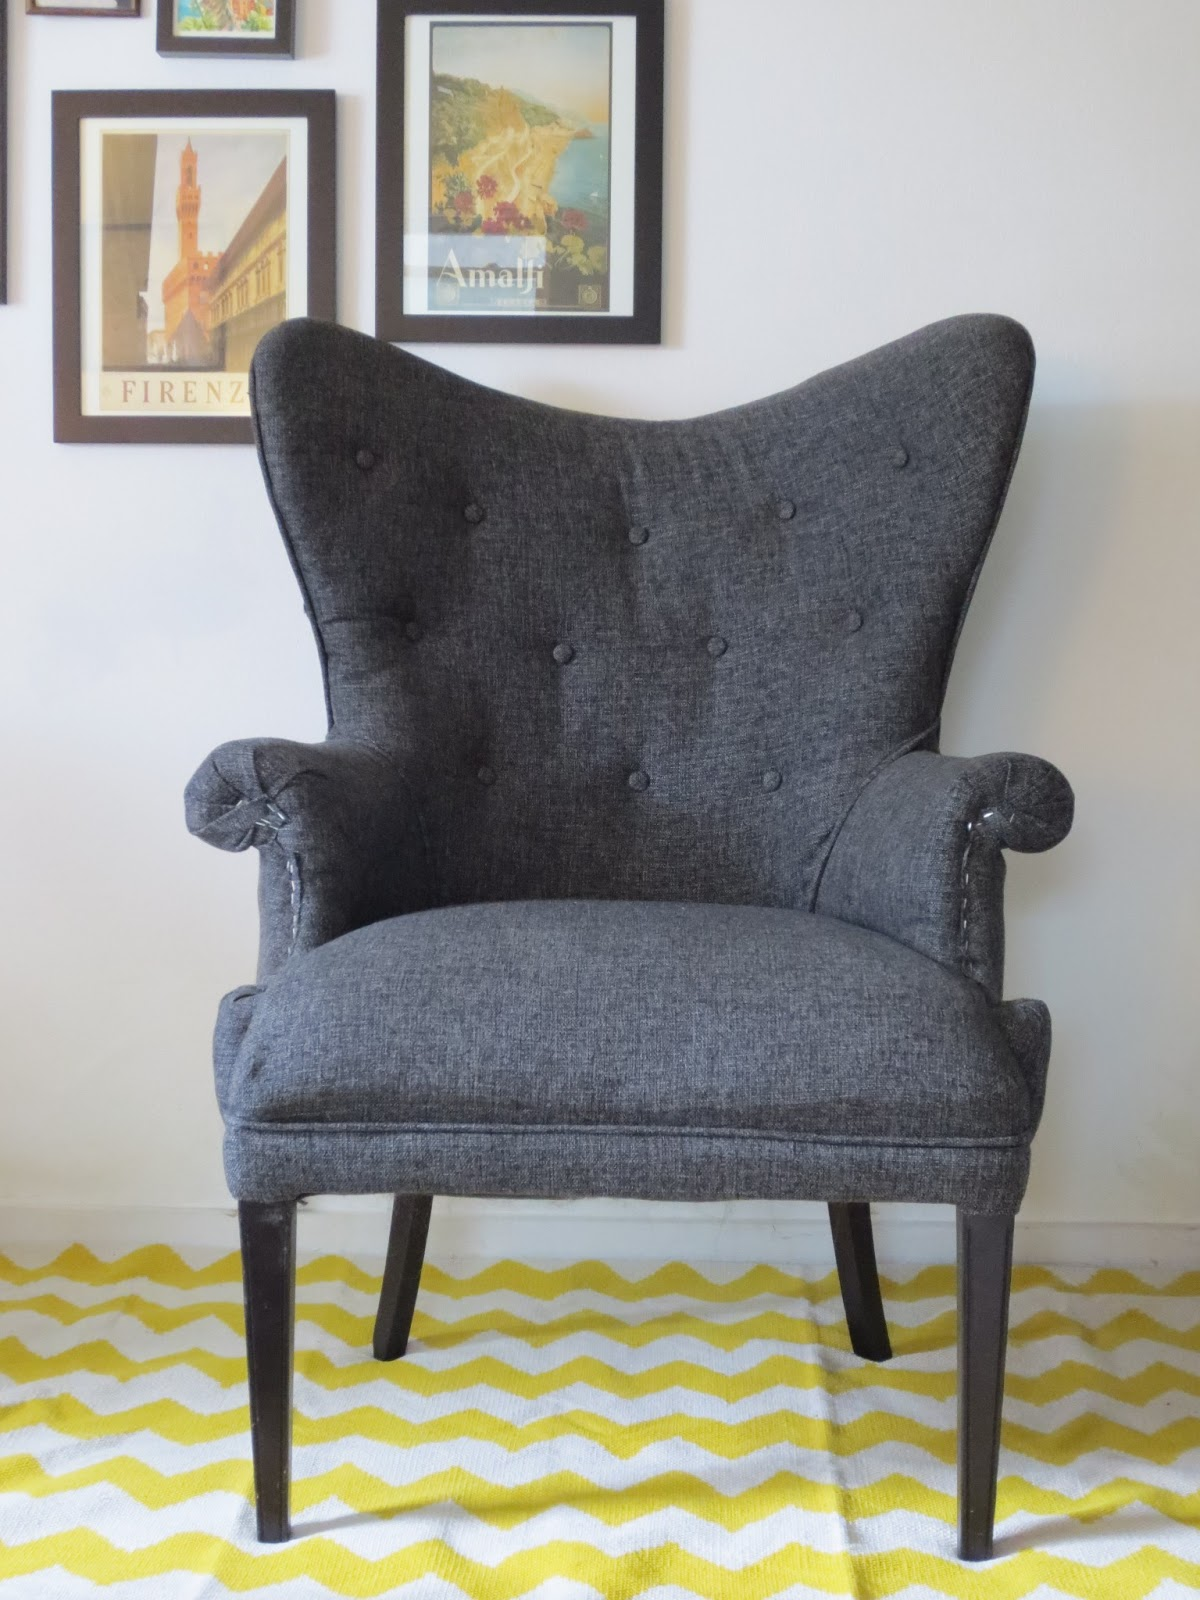 Amazing Reupholstering A Chair... In Photos